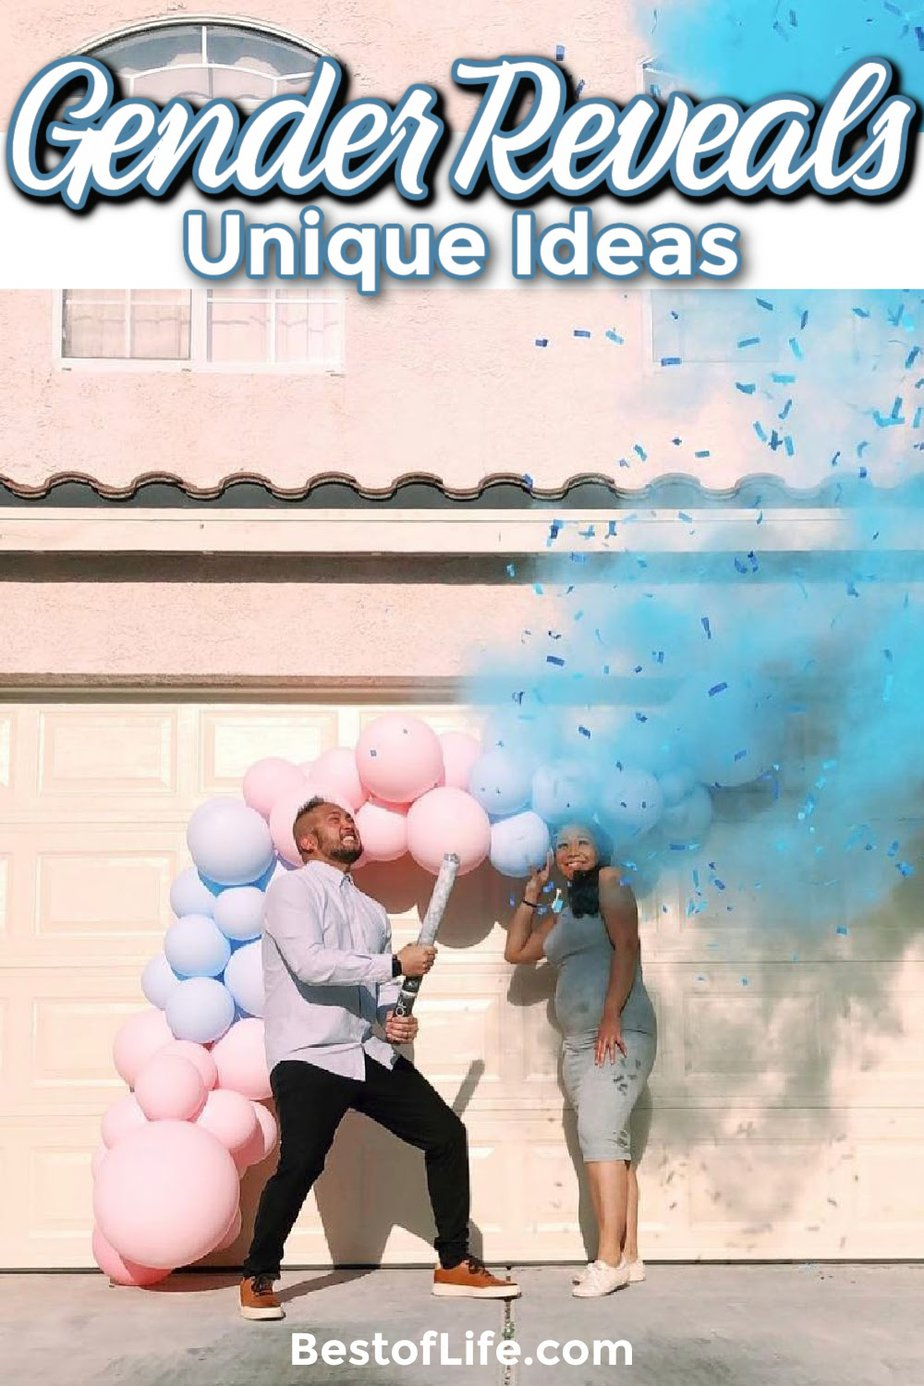 Unique gender reveal ideas are fun ways to reveal the gender of a coming baby to the parents, their family, and their closest friends. Gender Reveal Ideas for Party   Gender Reveal Nursery   Cakes for Gender Reveal Parties   Gender Reveal Decorations   Games for Gender Reveals   Gender Reveal Ideas Themes   Creative Gender Reveal Ideas   Last Minute Gender Reveal Ideas #parenting #babyshower via @thebestoflife